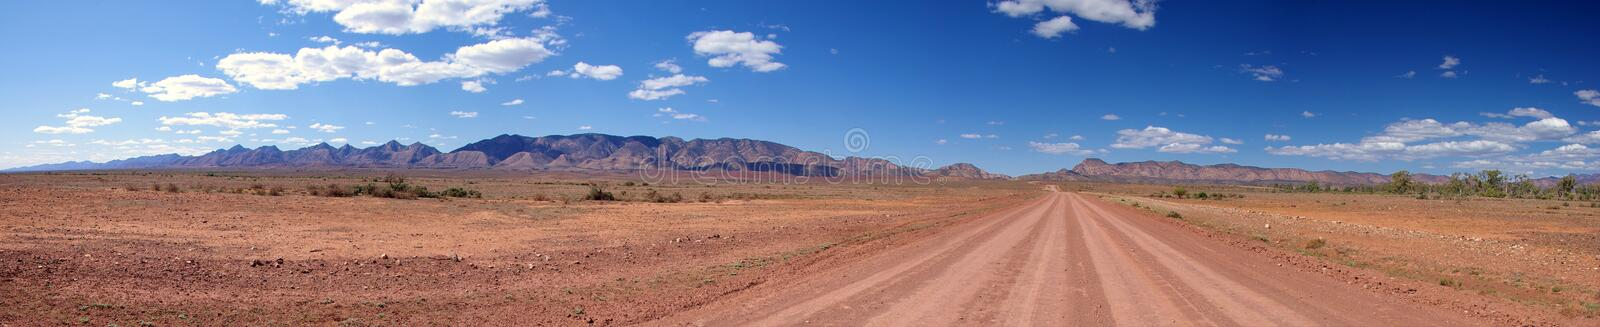 Download Outback Road & Mountain Range Stock Photo - Image: 6333214